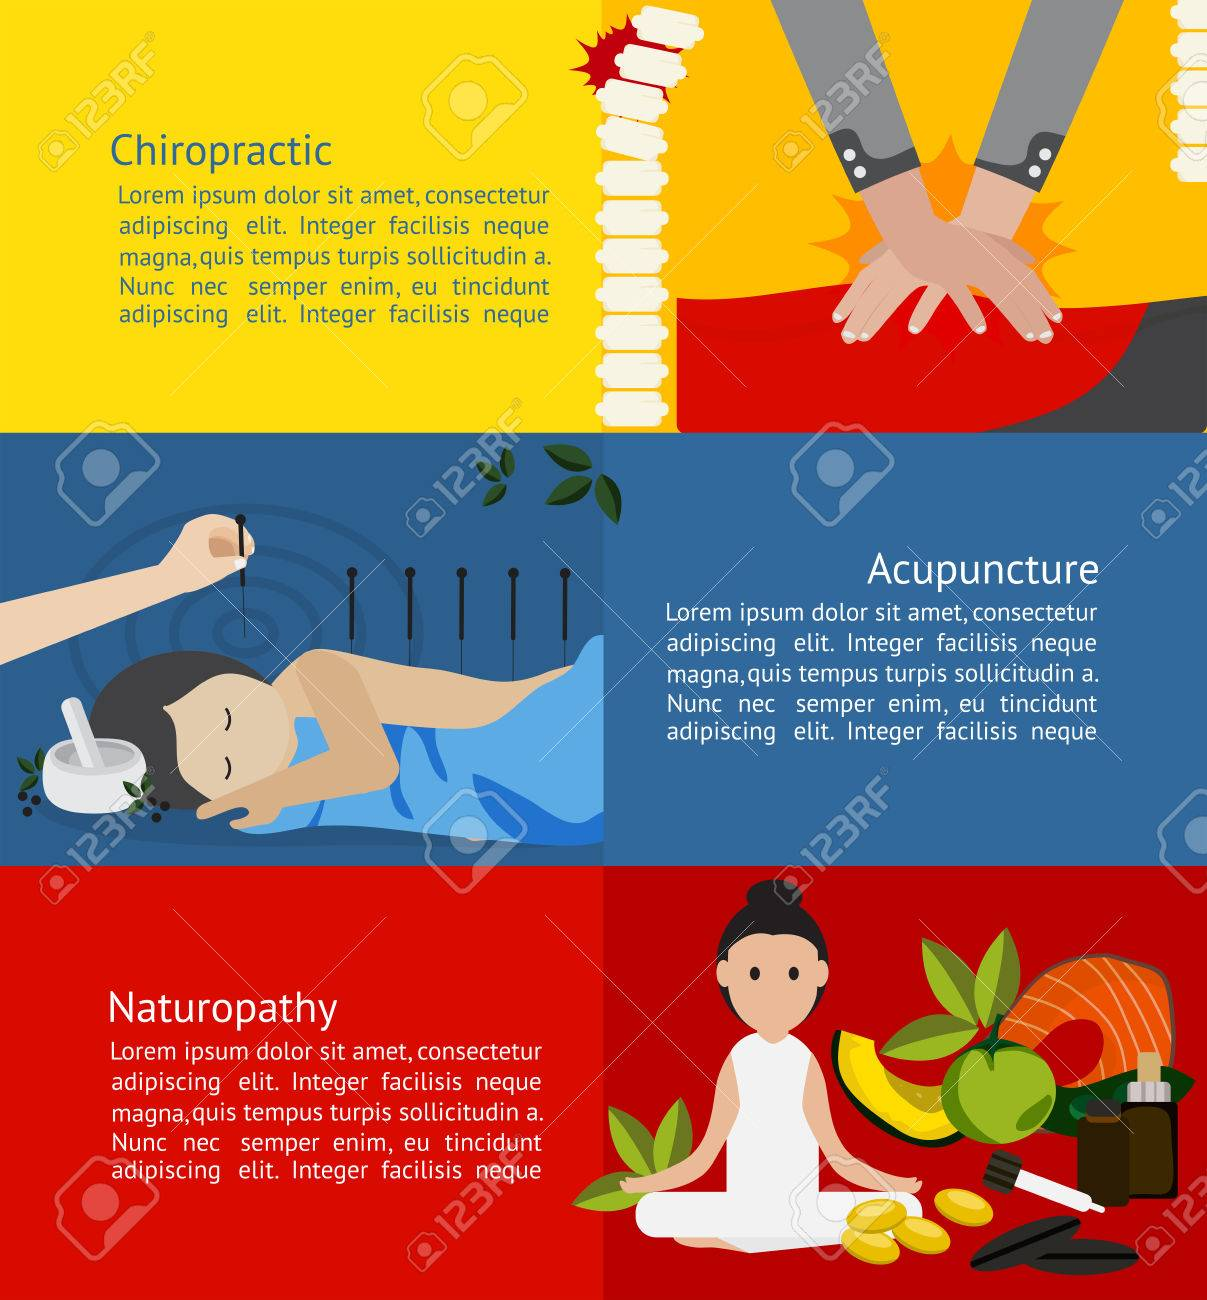 Alternative Medicine And Treatment Clinic For Patient Such As Royalty Free Cliparts Vectors And Stock Illustration Image 50228493